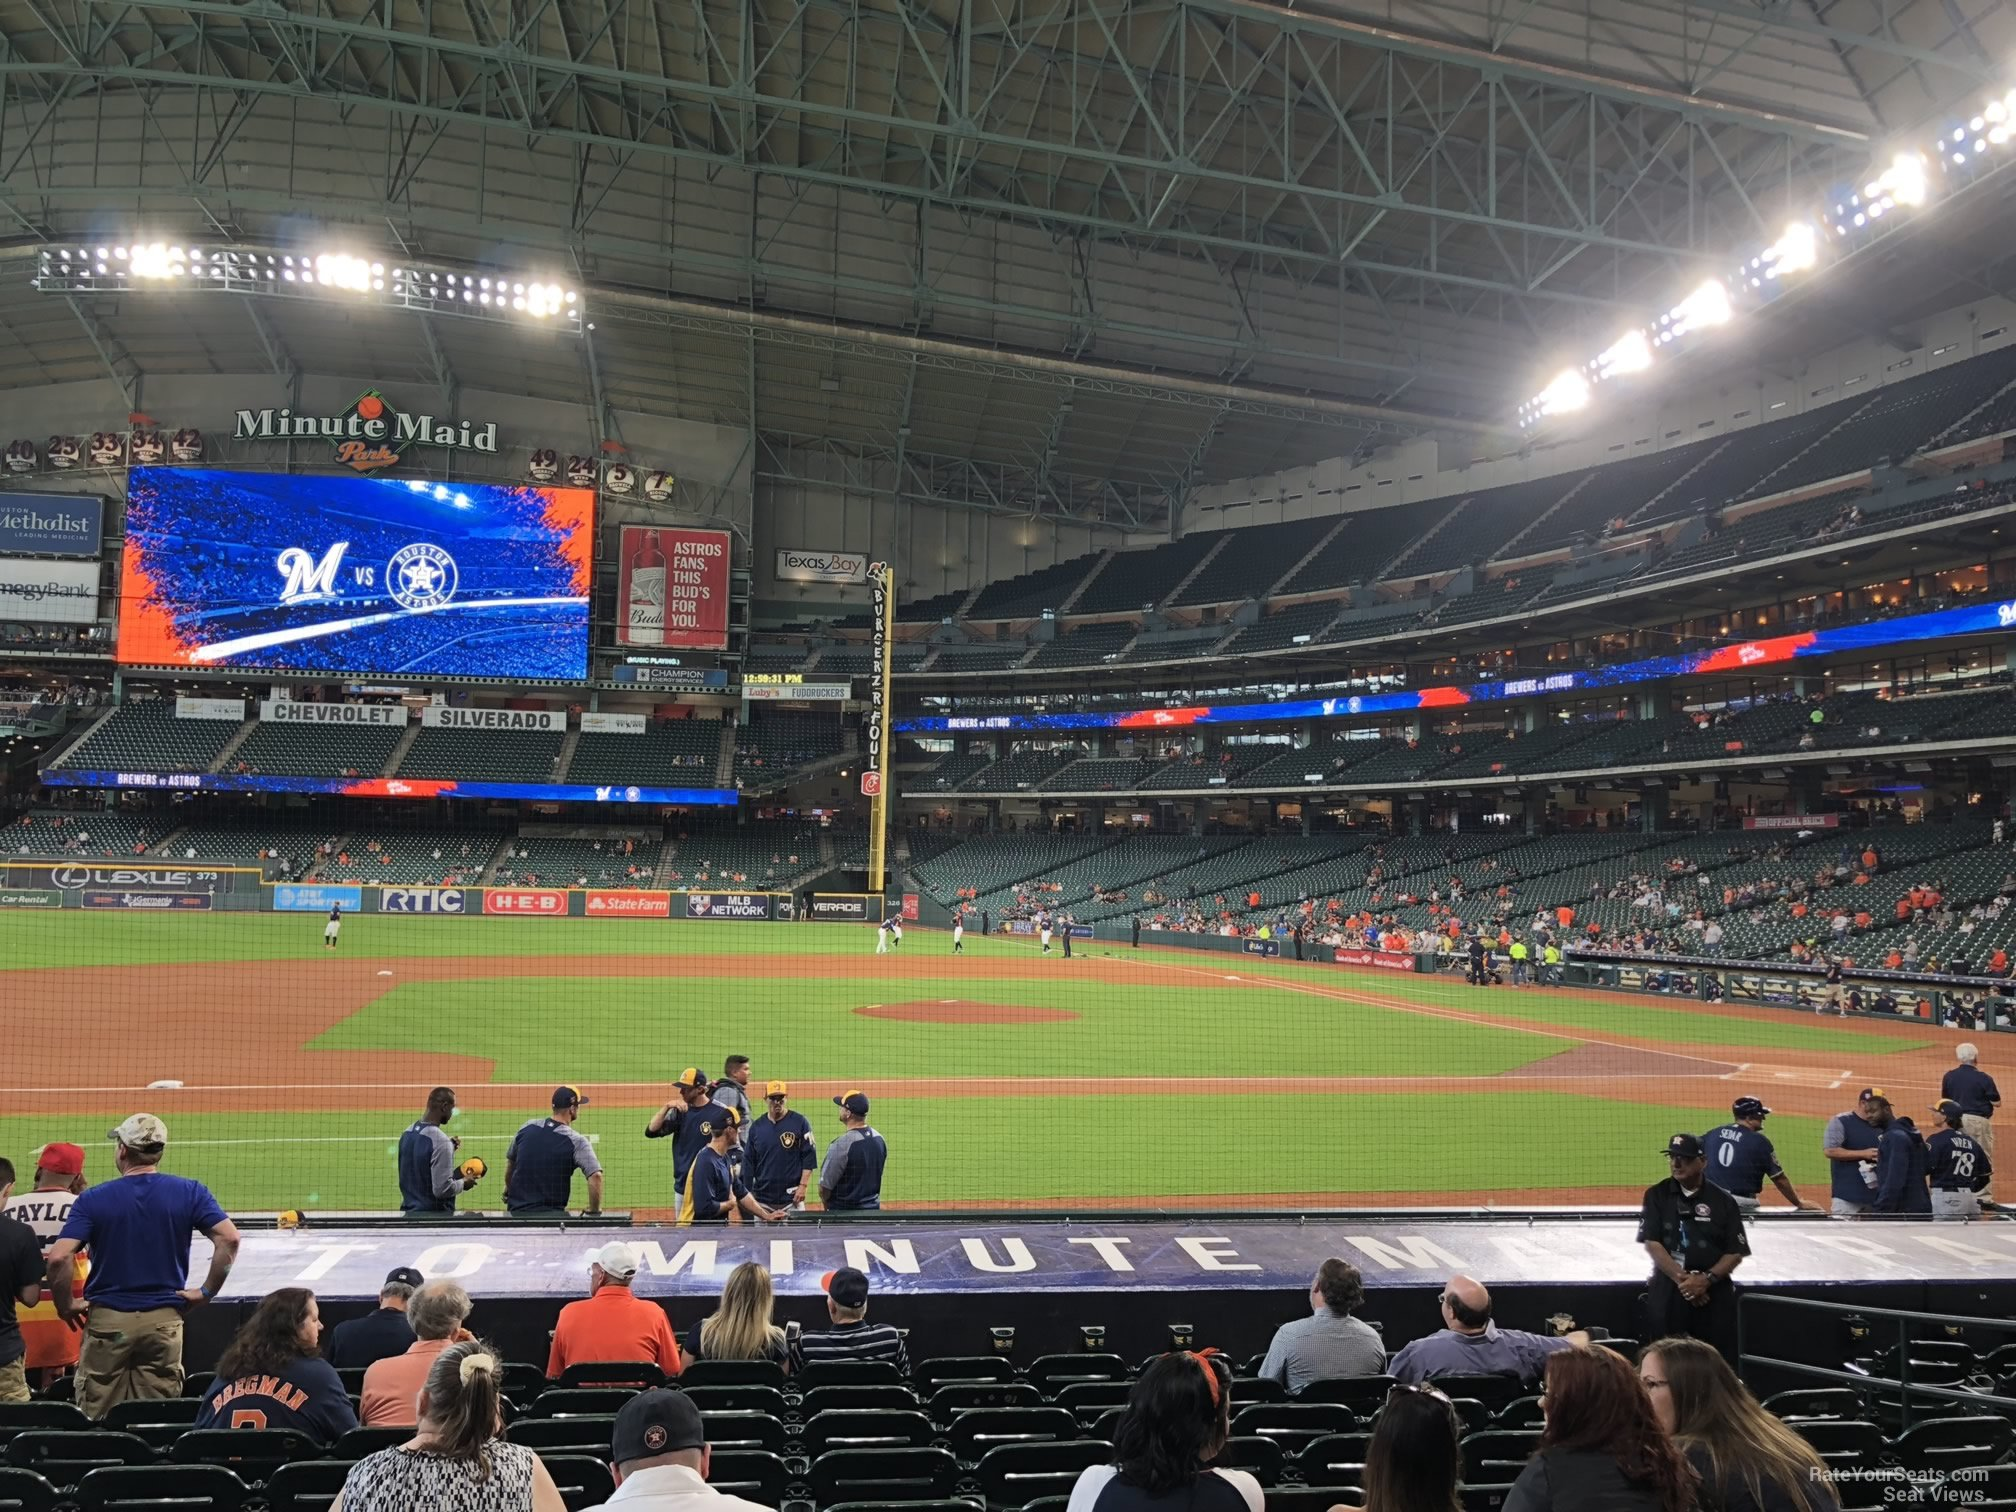 Seat View for Minute Maid Park Section 113, Row 15